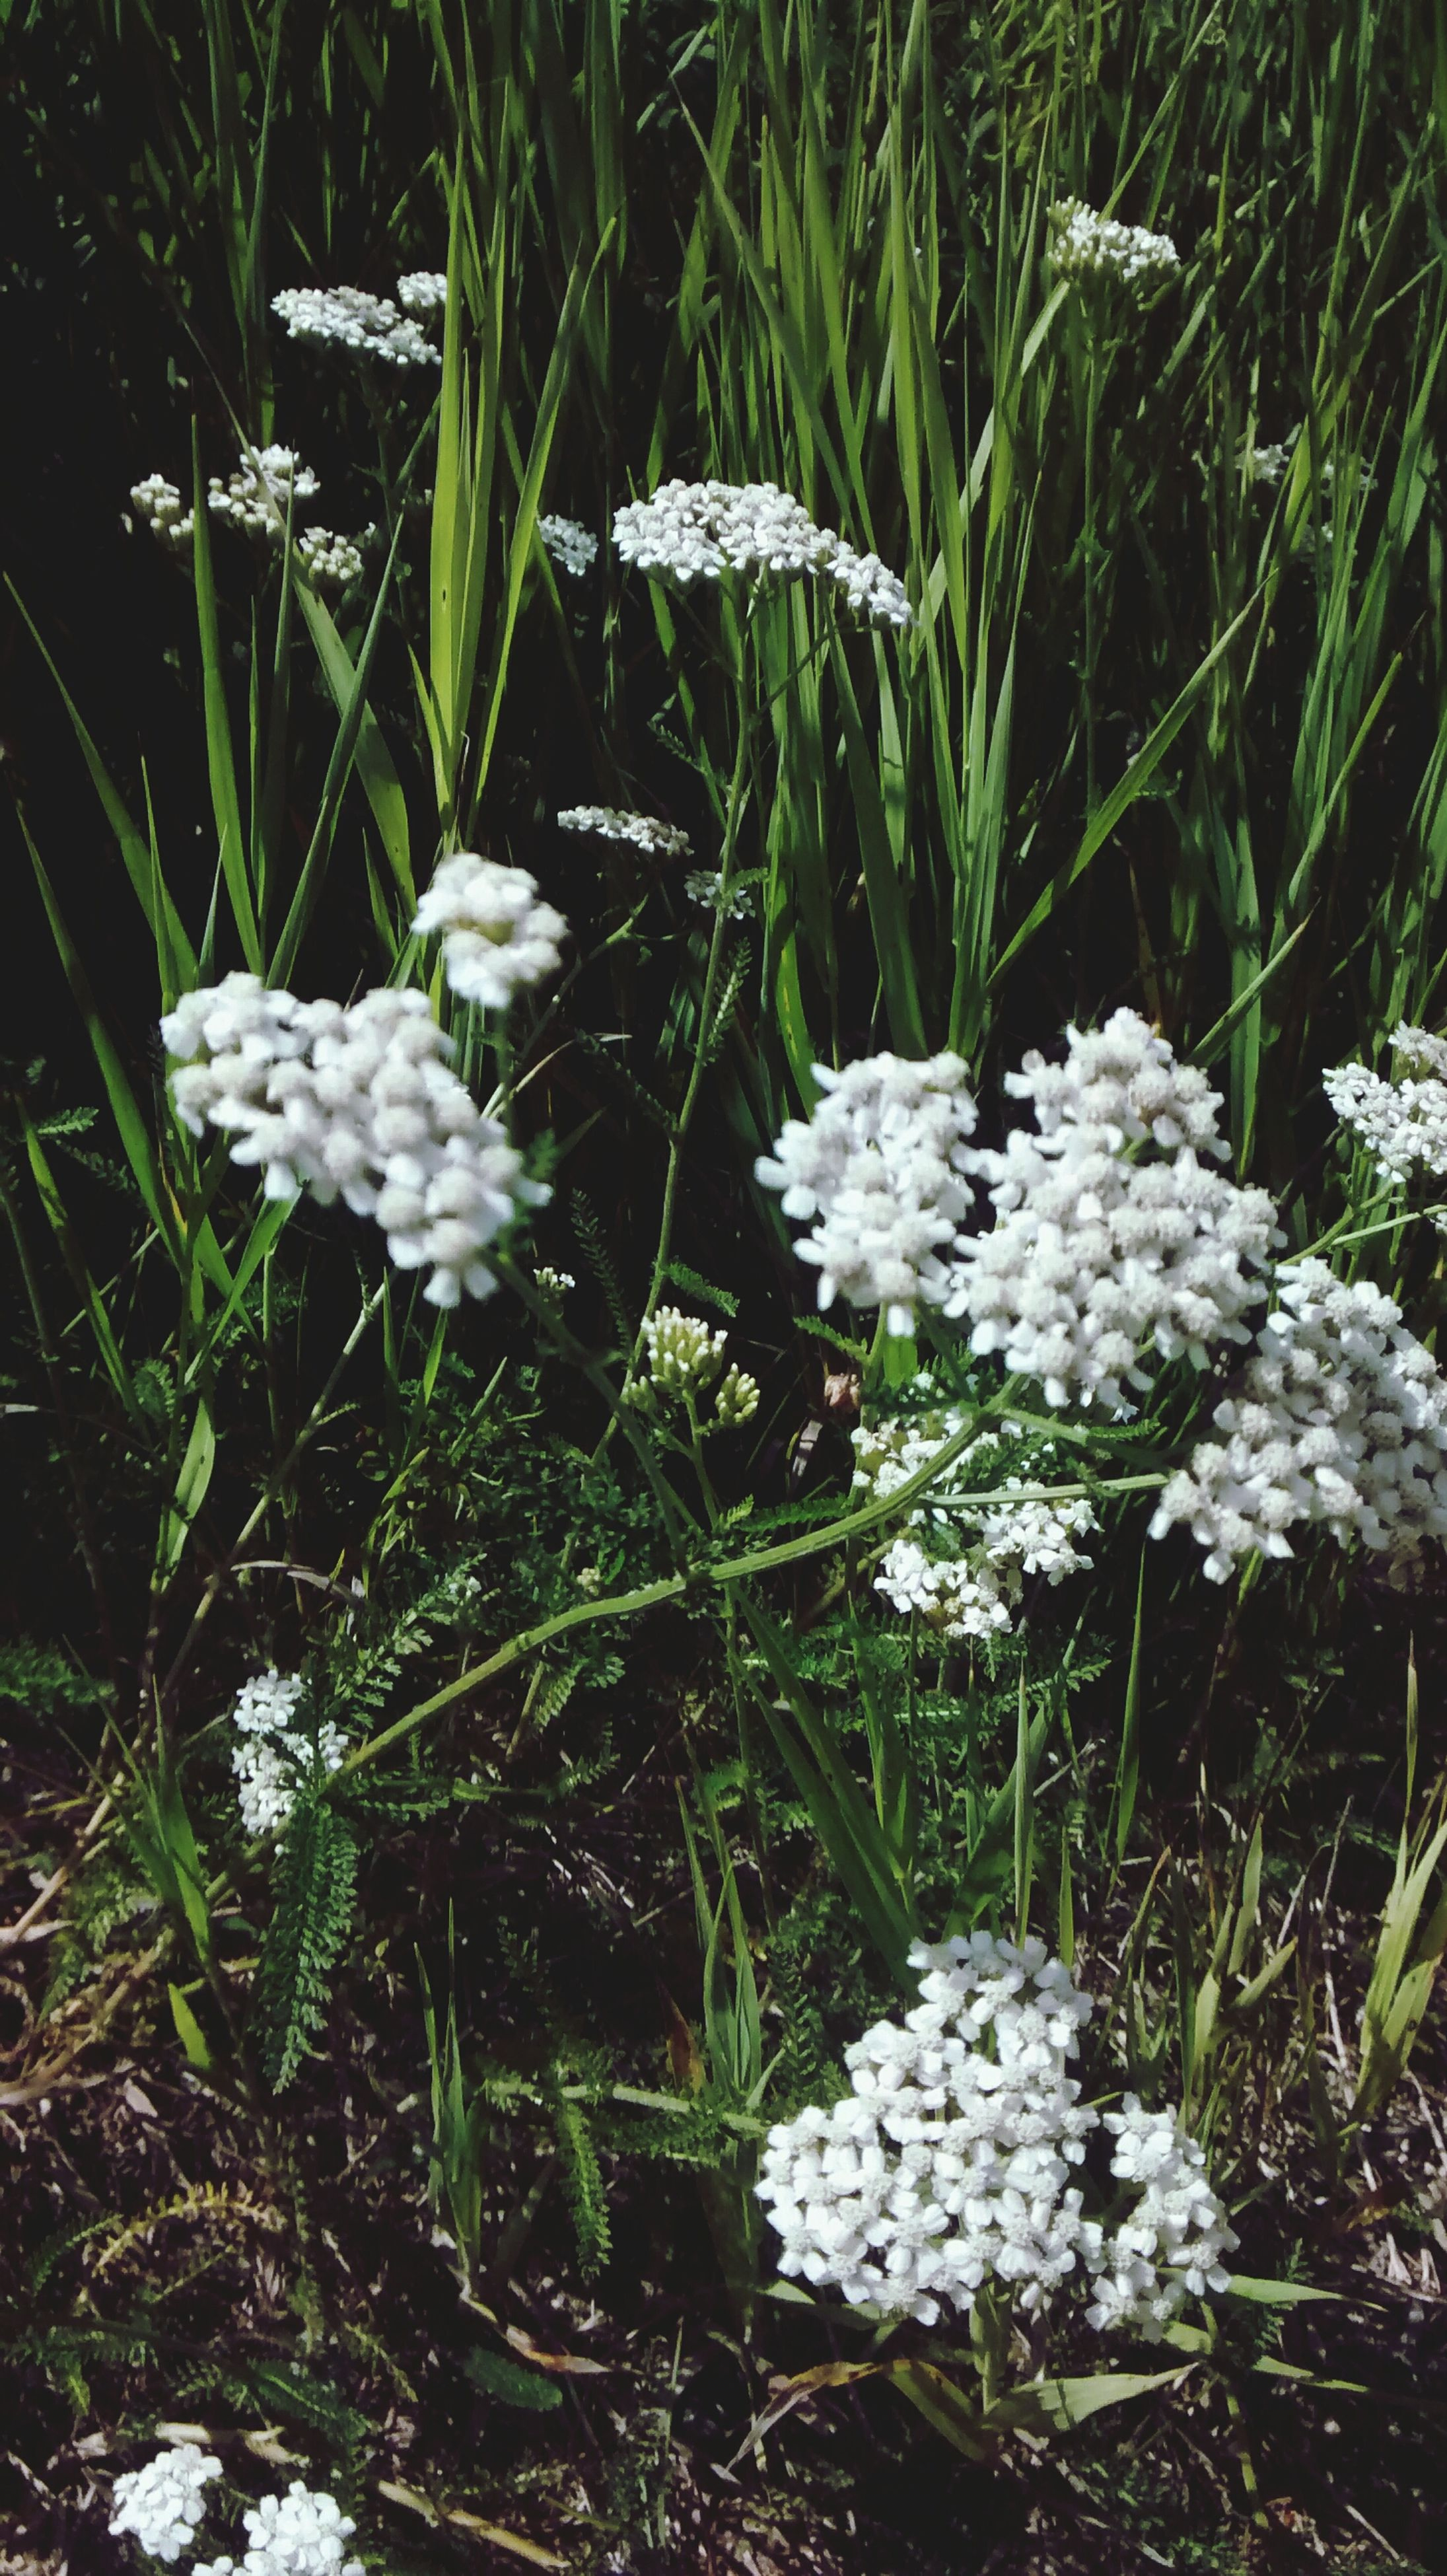 flower, white color, growth, plant, fragility, freshness, nature, beauty in nature, field, petal, blooming, season, white, day, outdoors, in bloom, flower head, grass, no people, tranquility, growing, green color, blossom, botany, close-up, weather, abundance